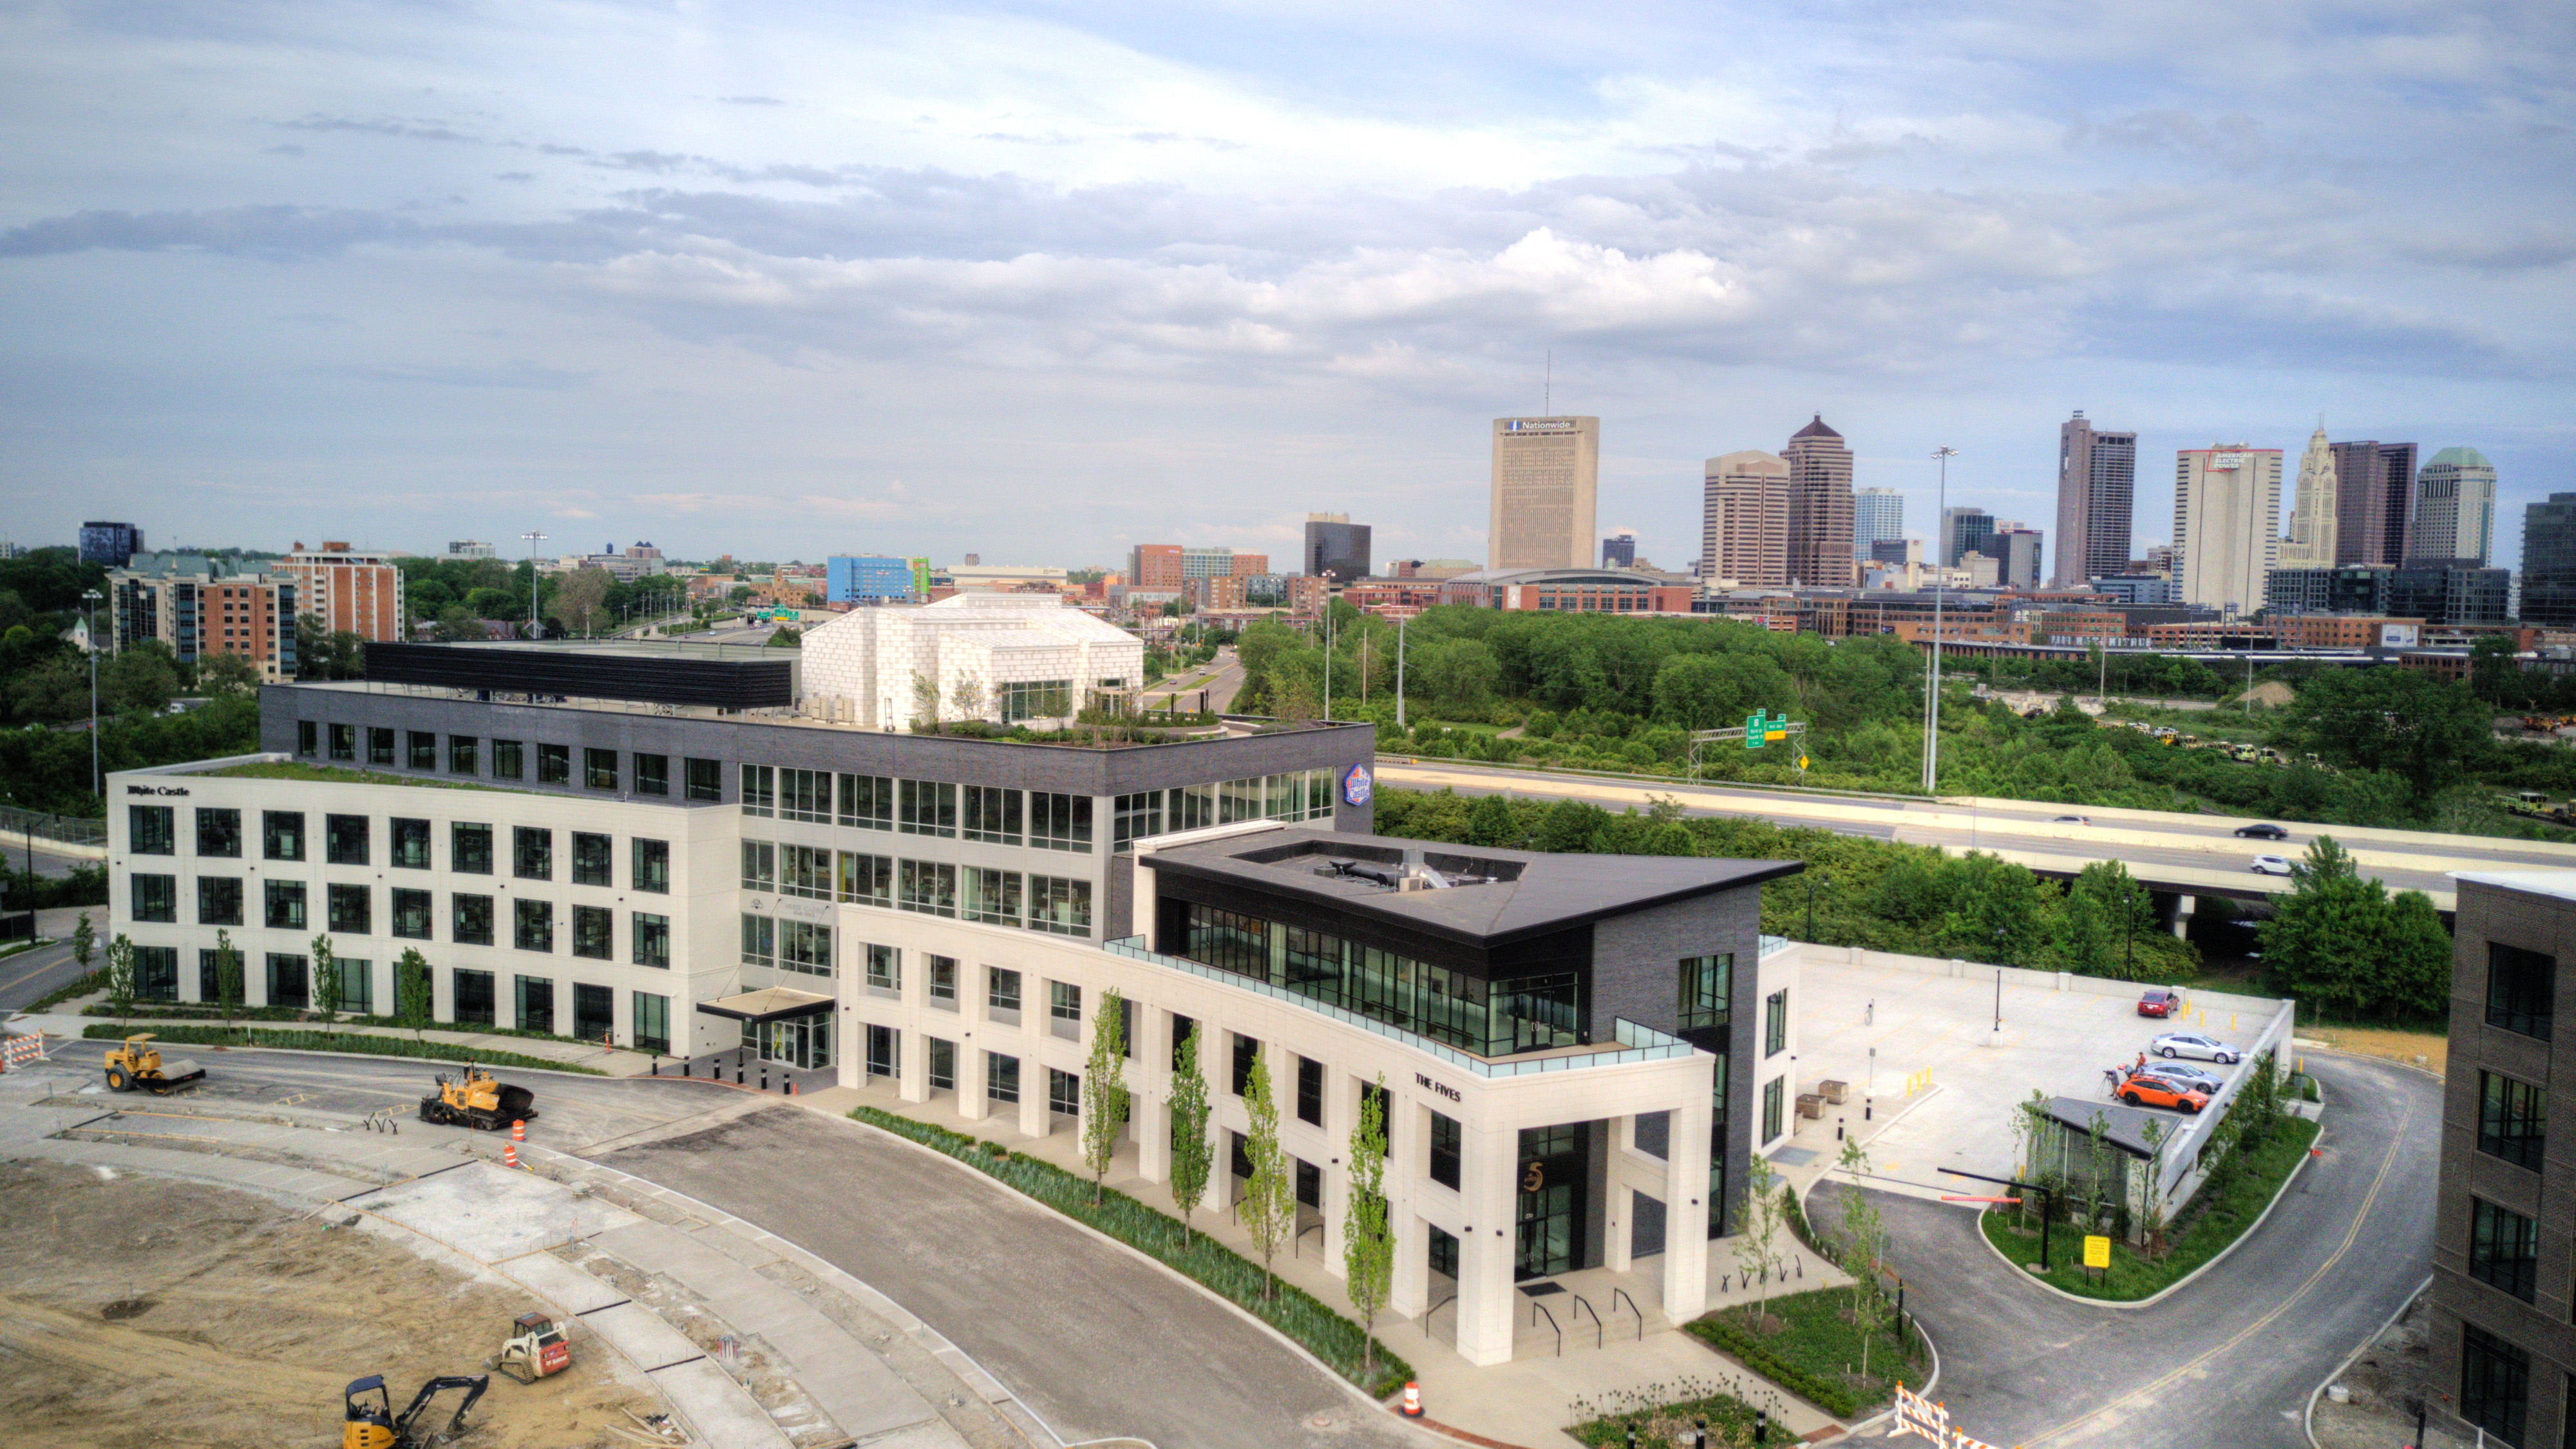 Overview of west elevation, overlooking downtown Columbus